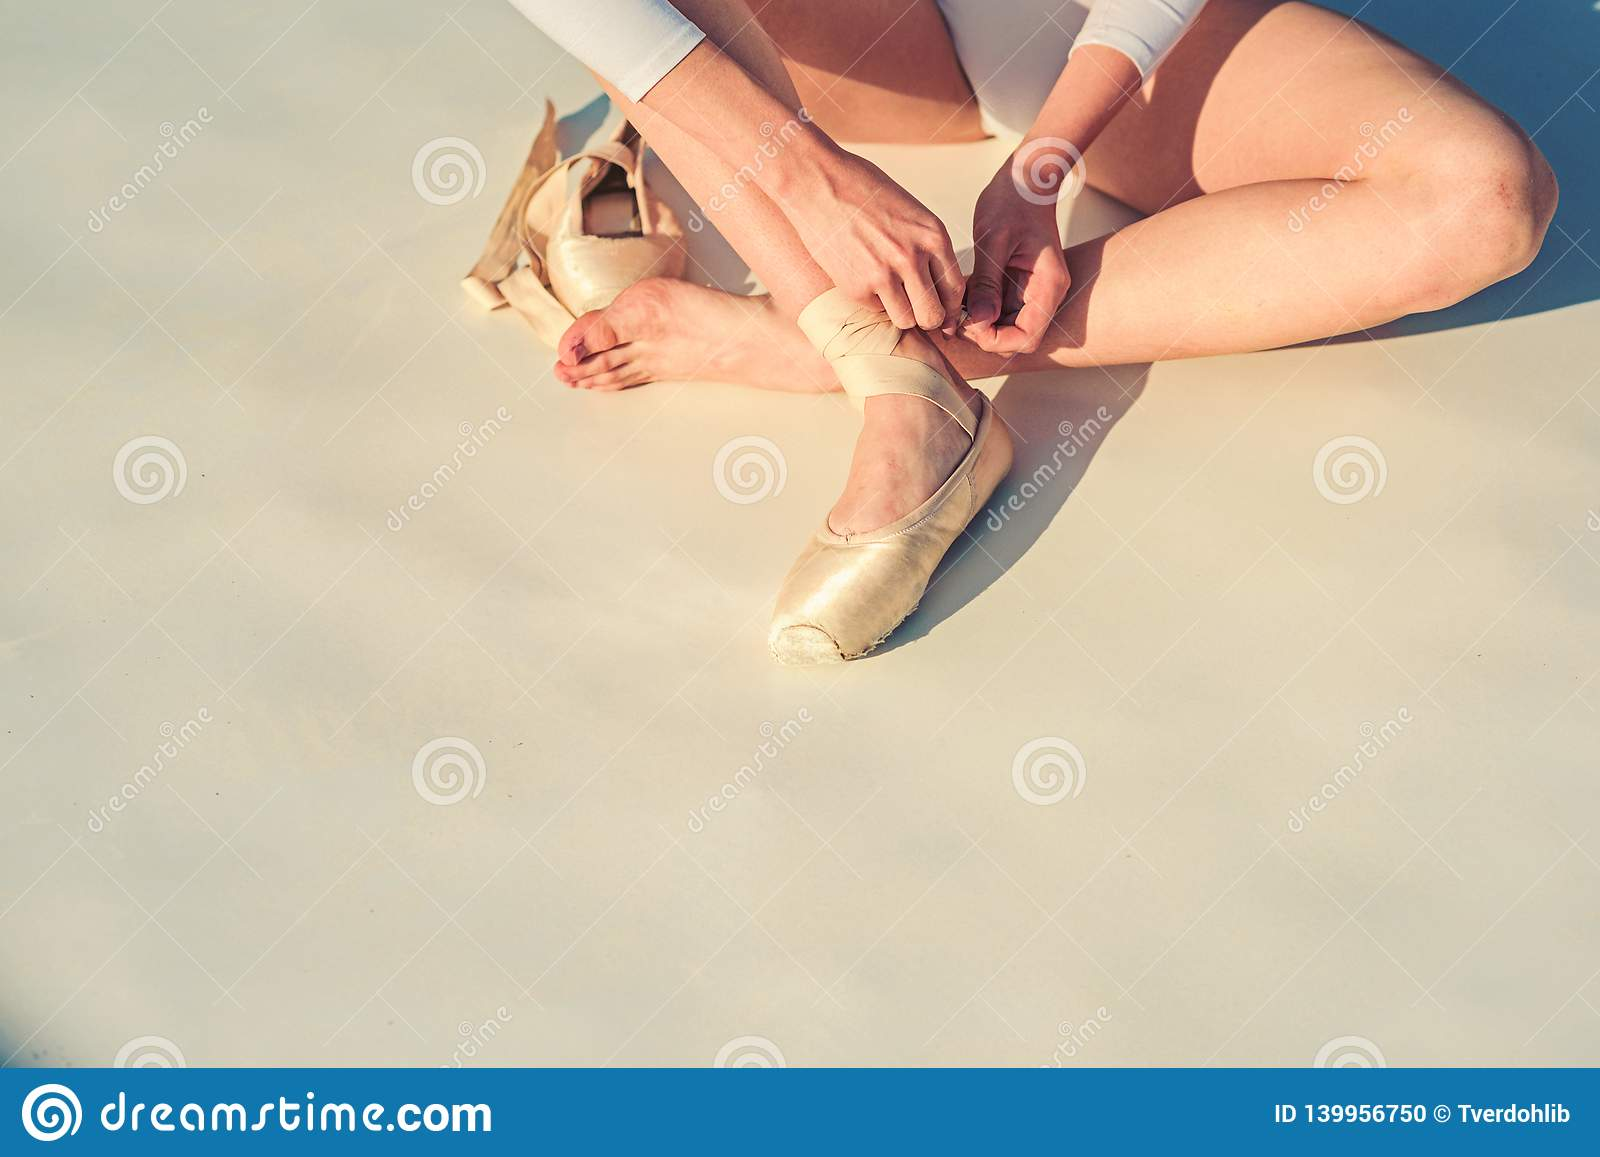 Dancing on pointe. Ballerina shoes. Ballerina legs in white ballet shoes. Lacing ballet slippers. Female feet in pointe